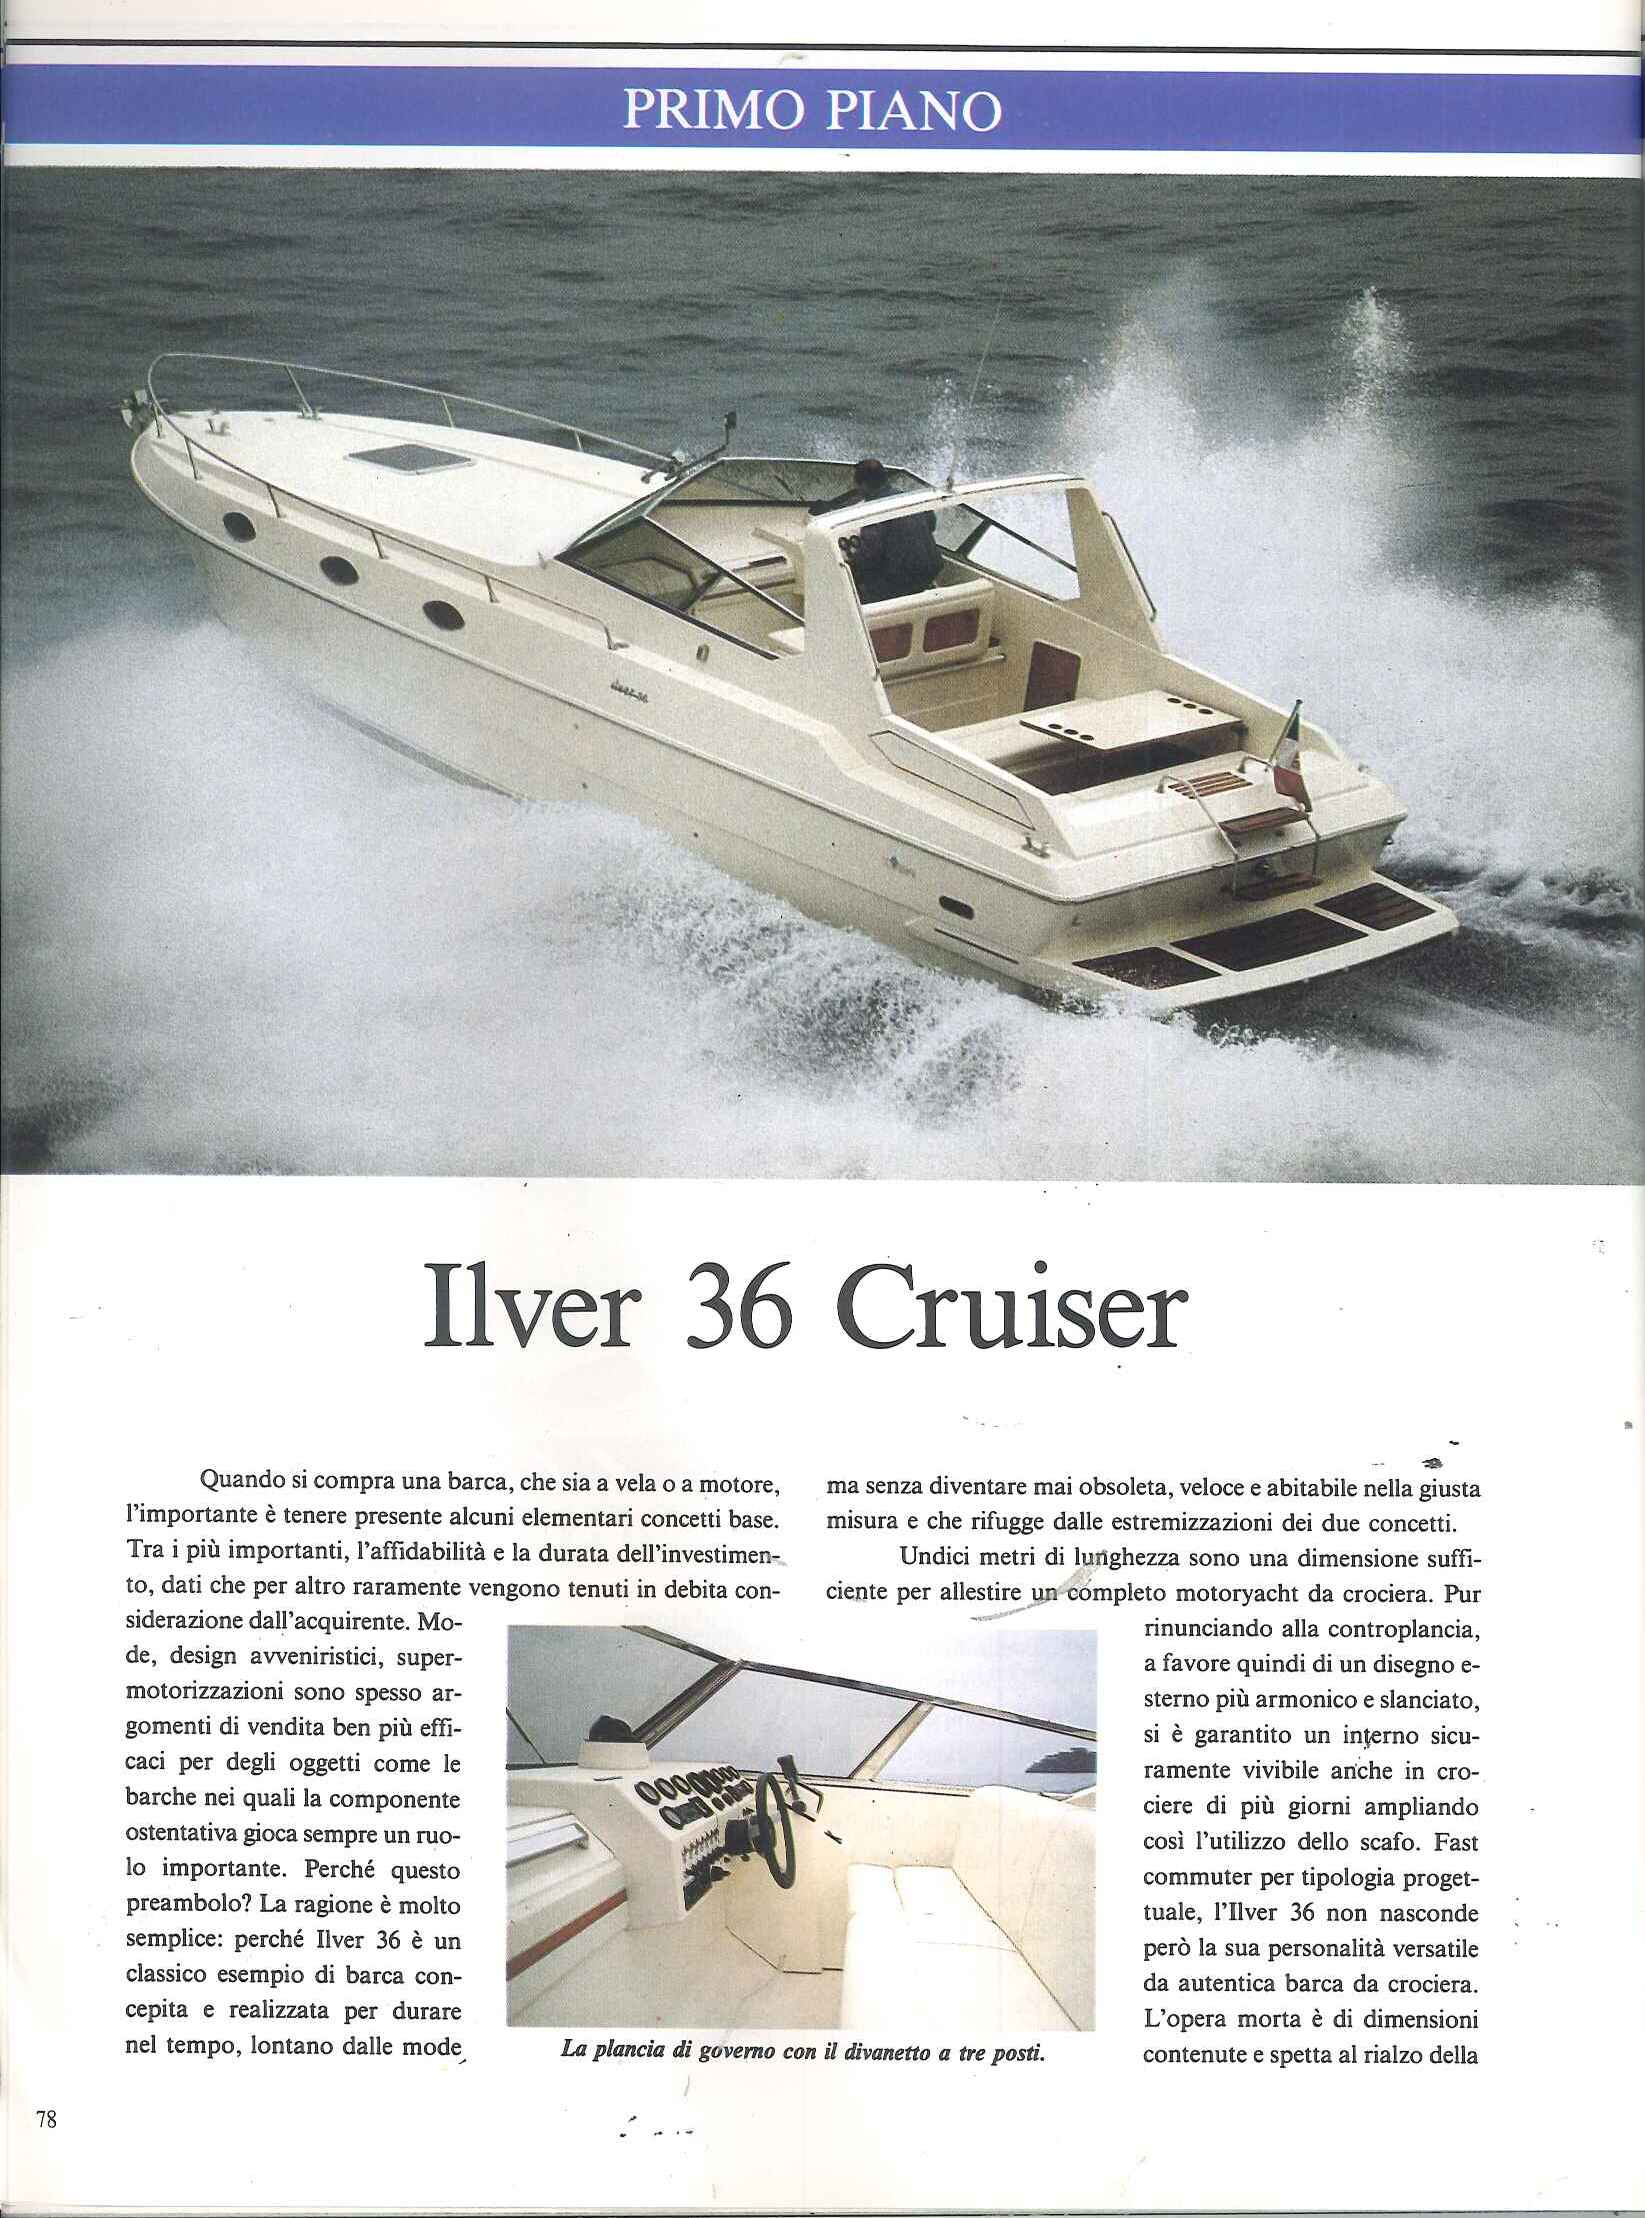 1989 04 PRESS ILVER 36 UOMO MARE 129 (01).jpg